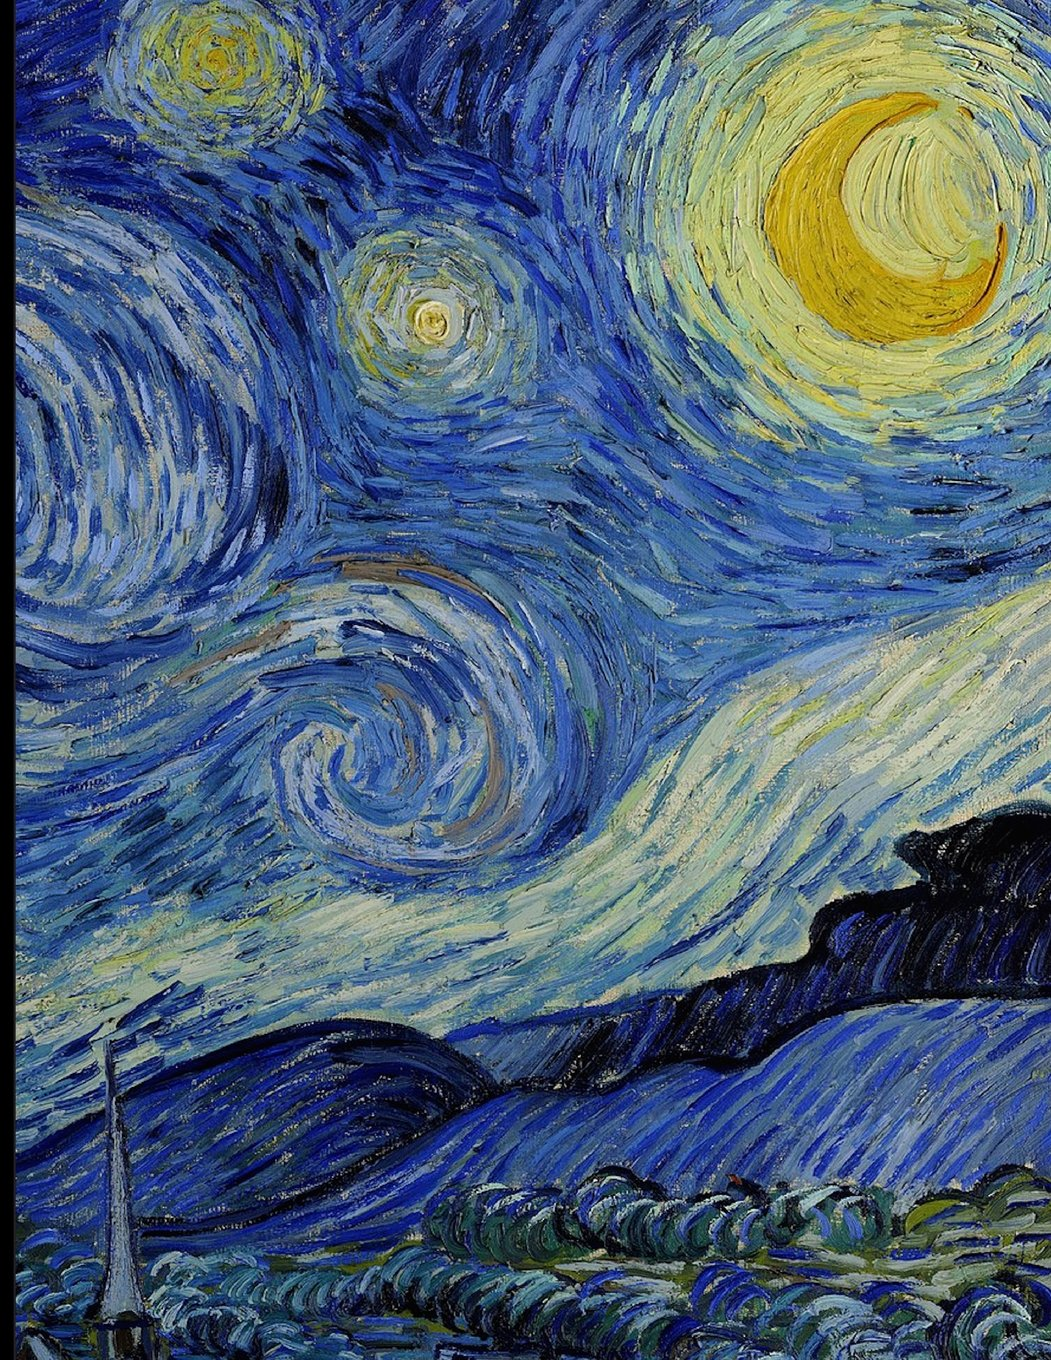 Notebook: Large Journal with Half Blank, Half College Ruled Paper, with Van Gogh's Starry Night; 8.5x11 Notebook, Use as a Journal or Diary or as a Gift for Men, Women, Boys, or Girls PDF